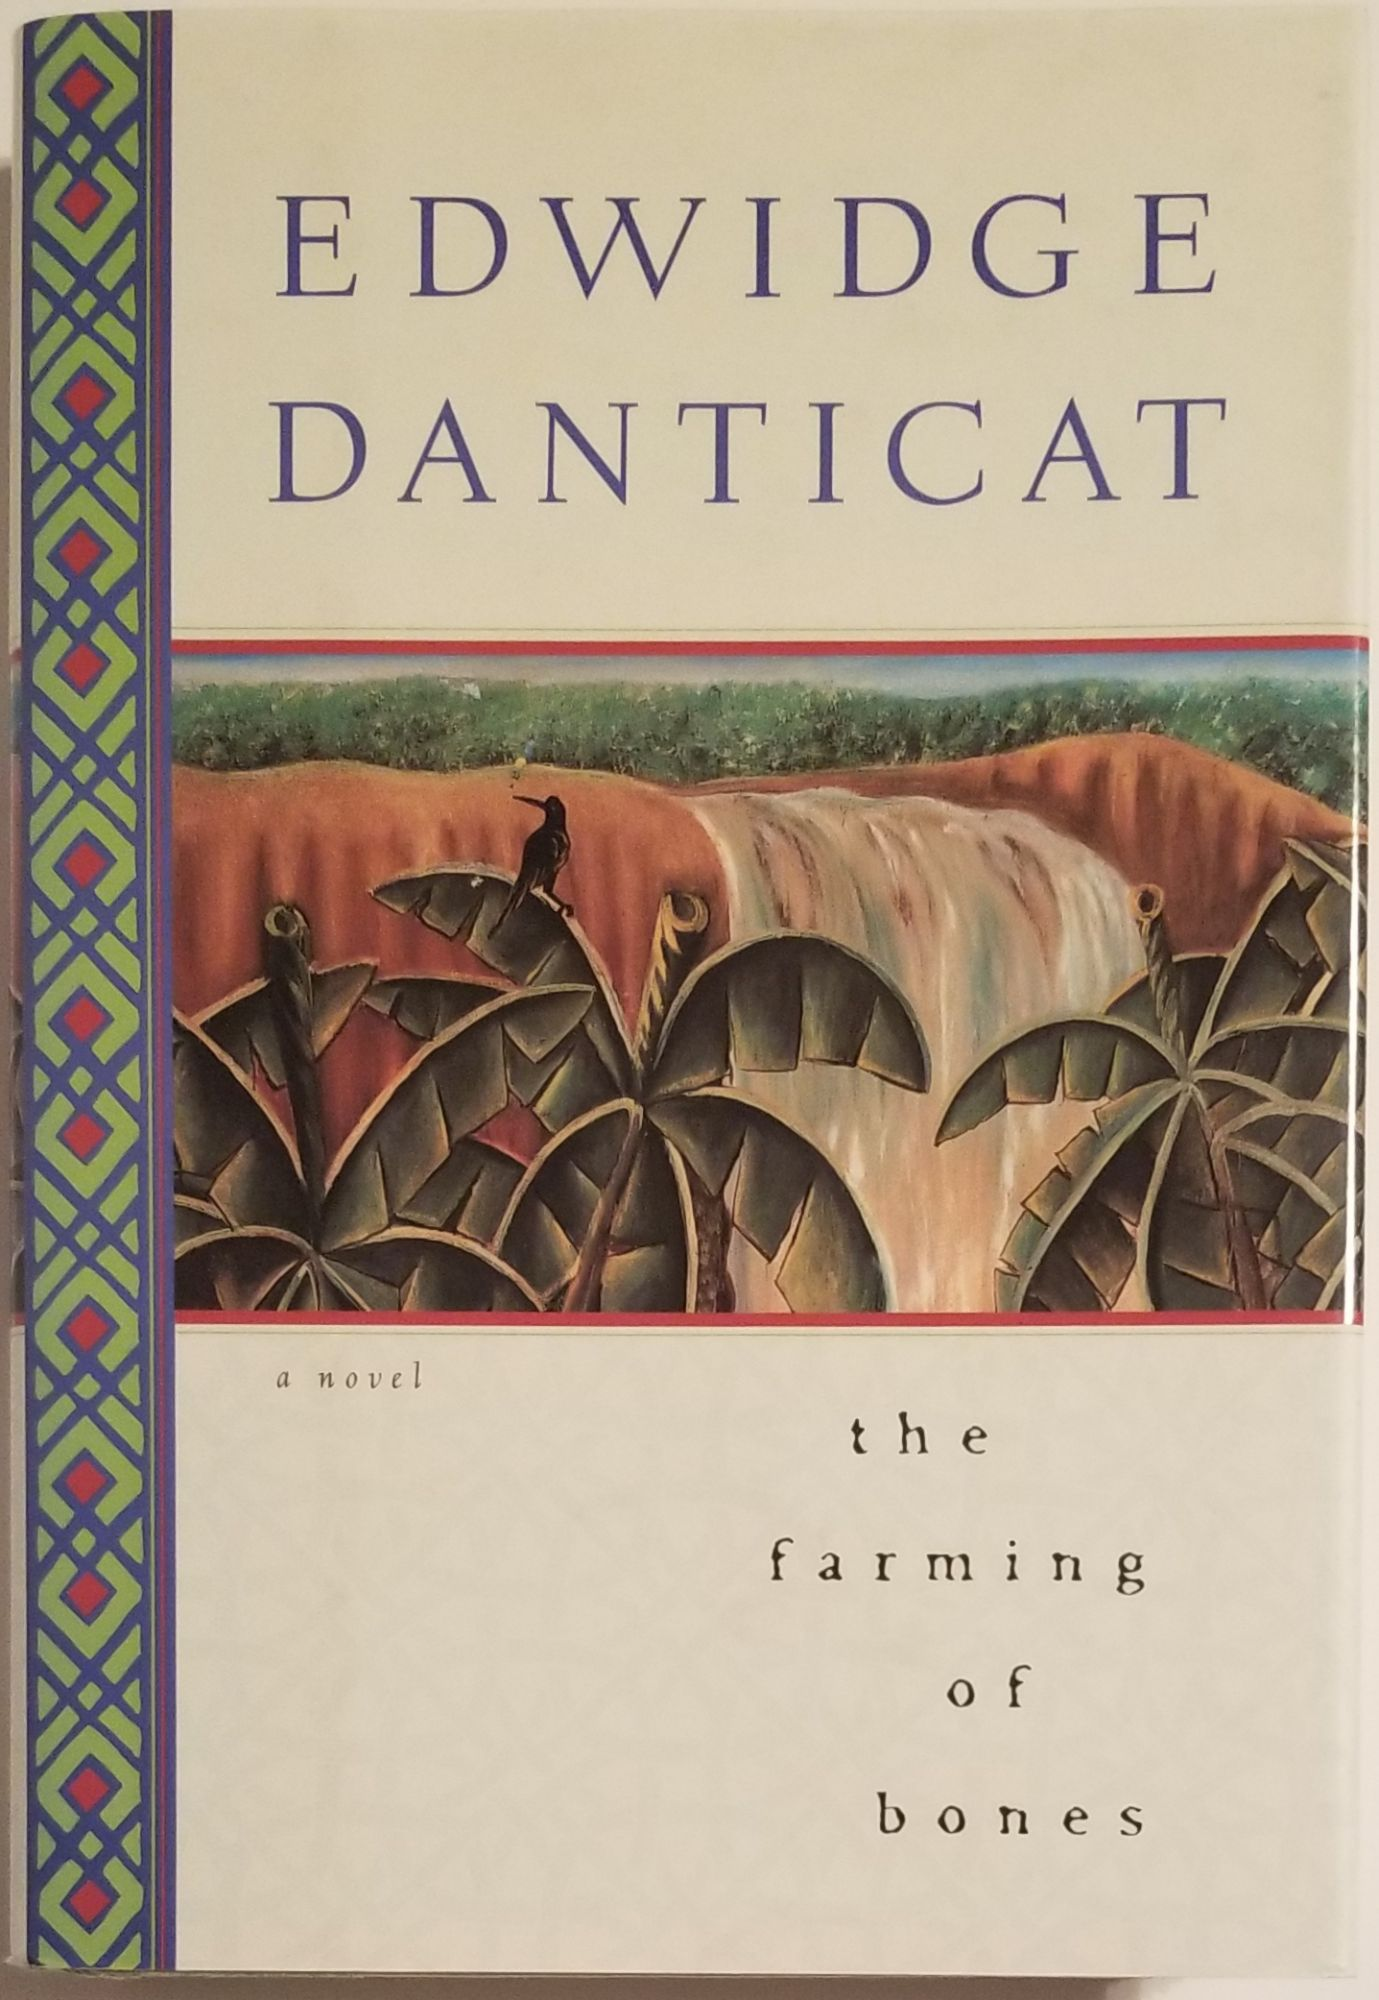 THE FARMING OF BONES. Edwidge Danticat.